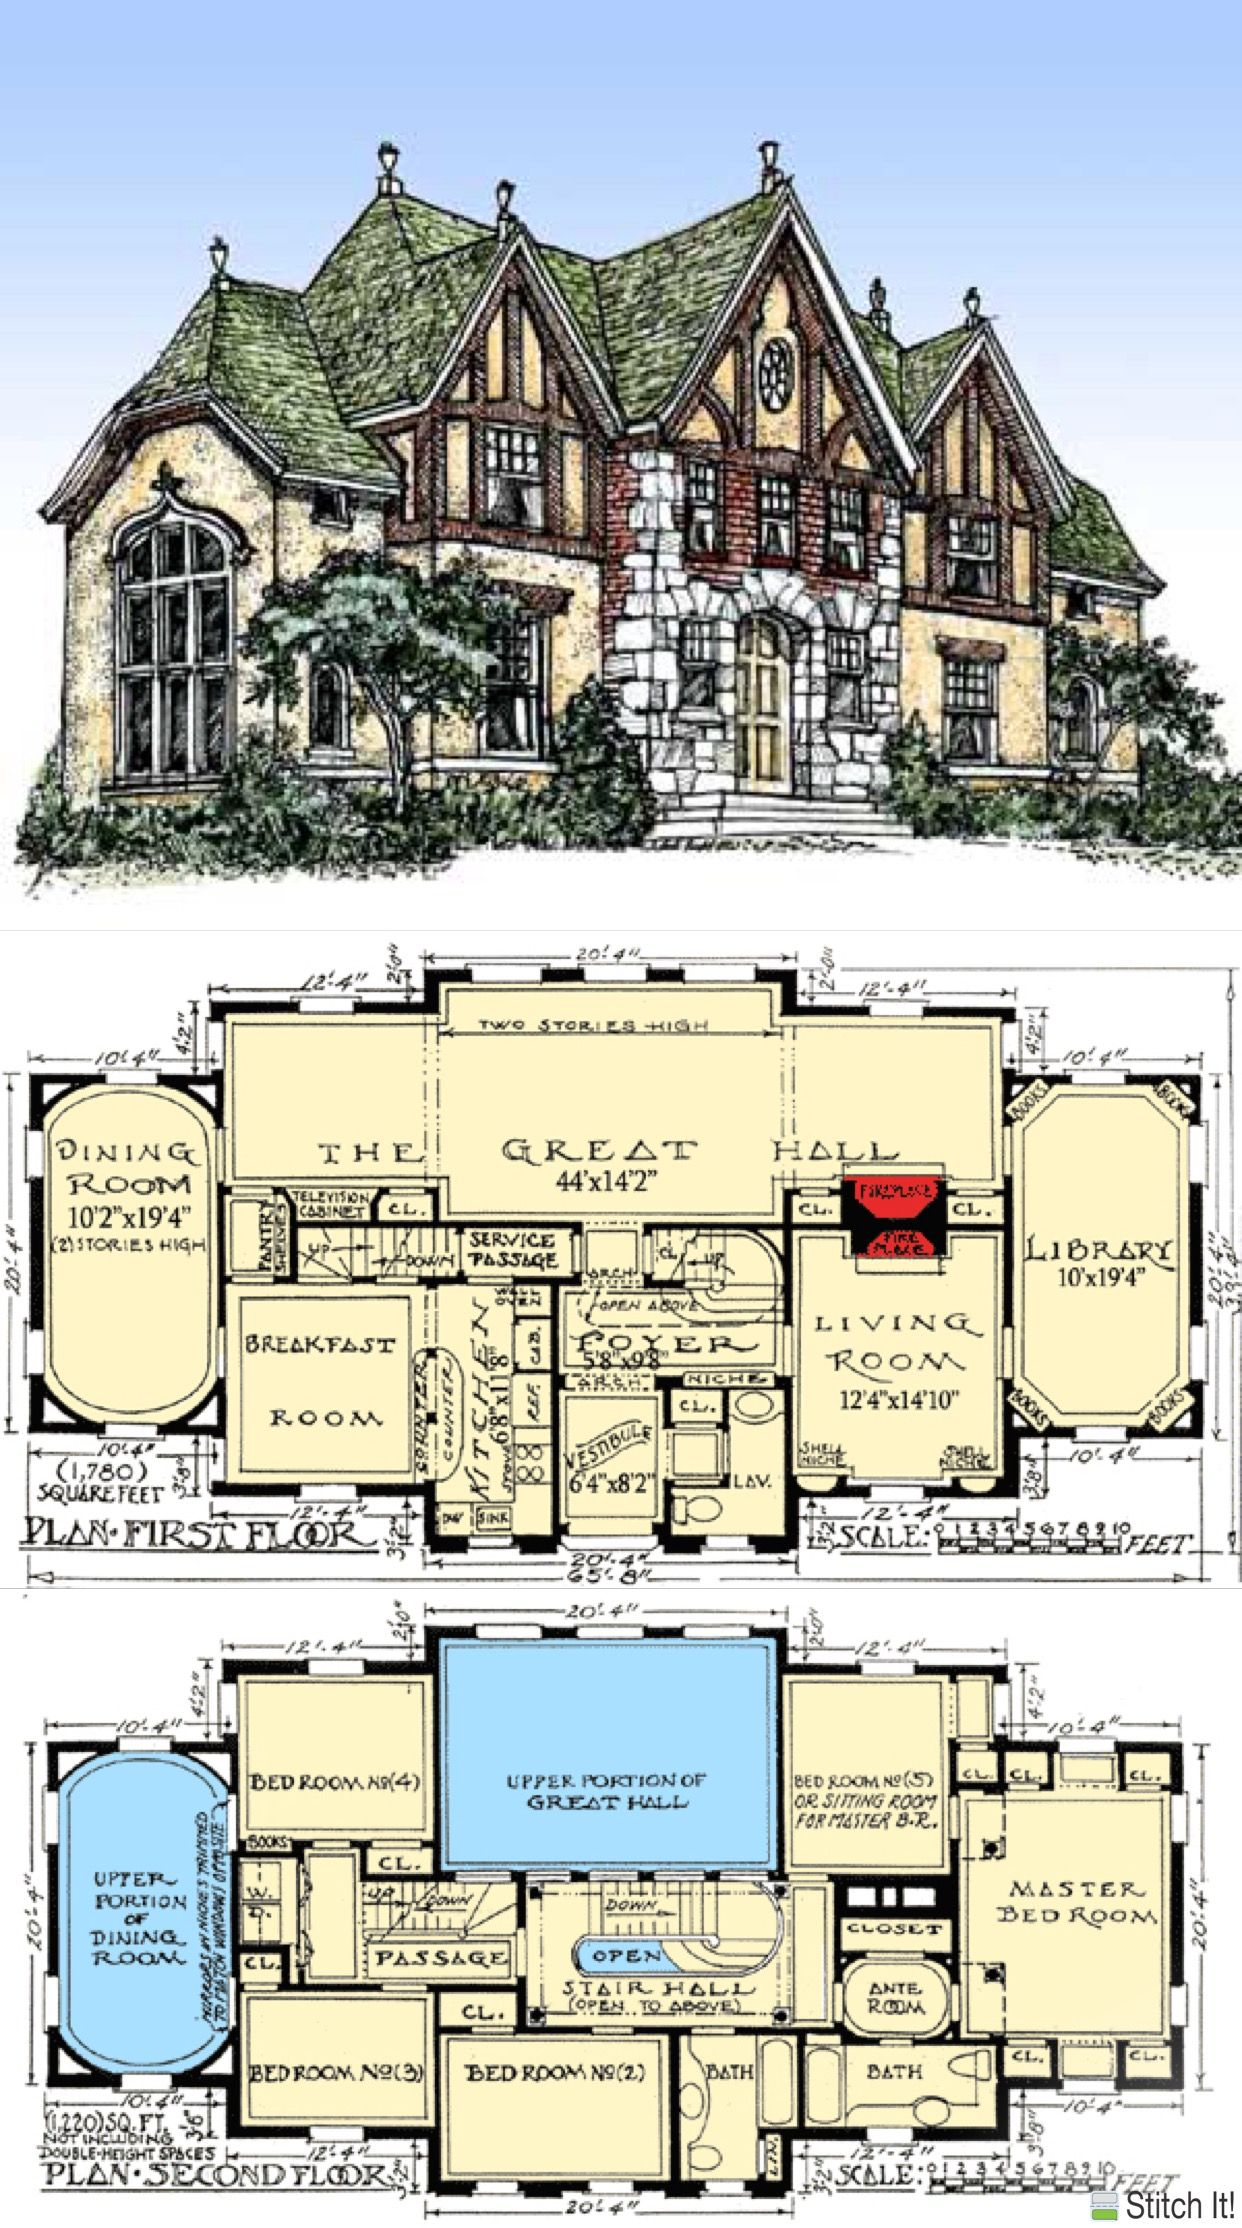 I Want To Make This House In The Sims Sims House Plans House Blueprints Vintage House Plans